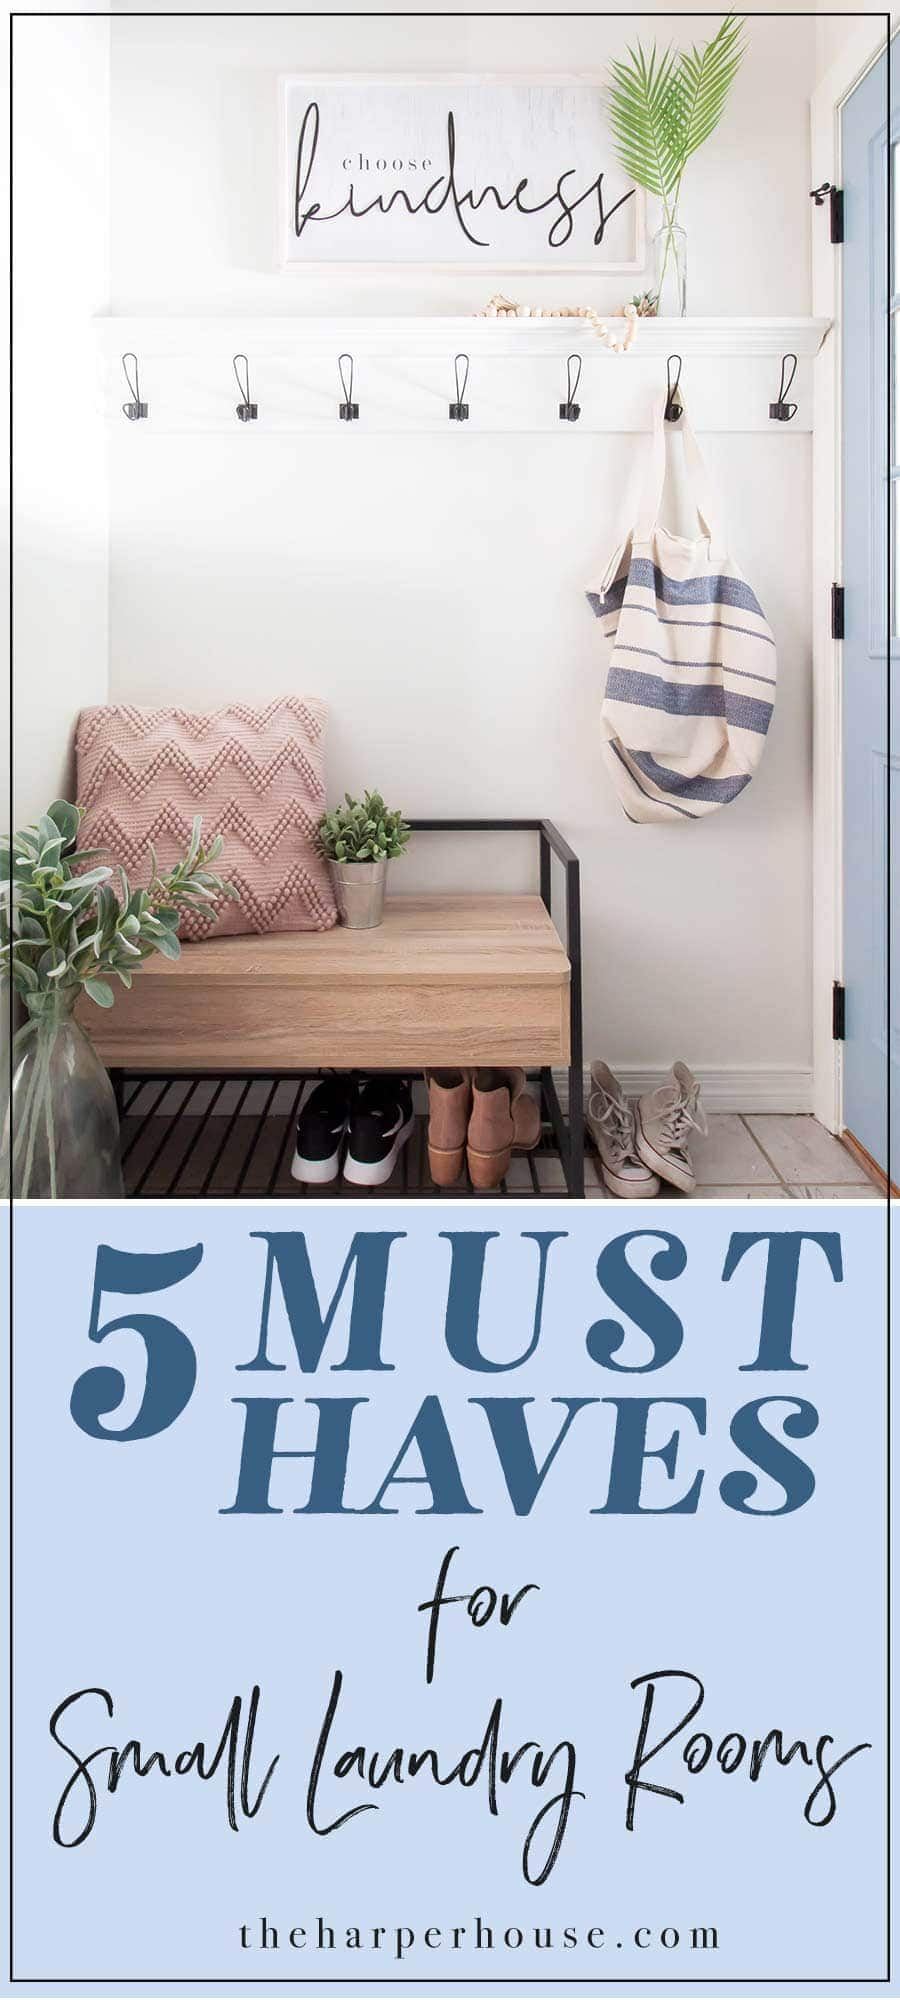 5 Must Haves for small laundry rooms